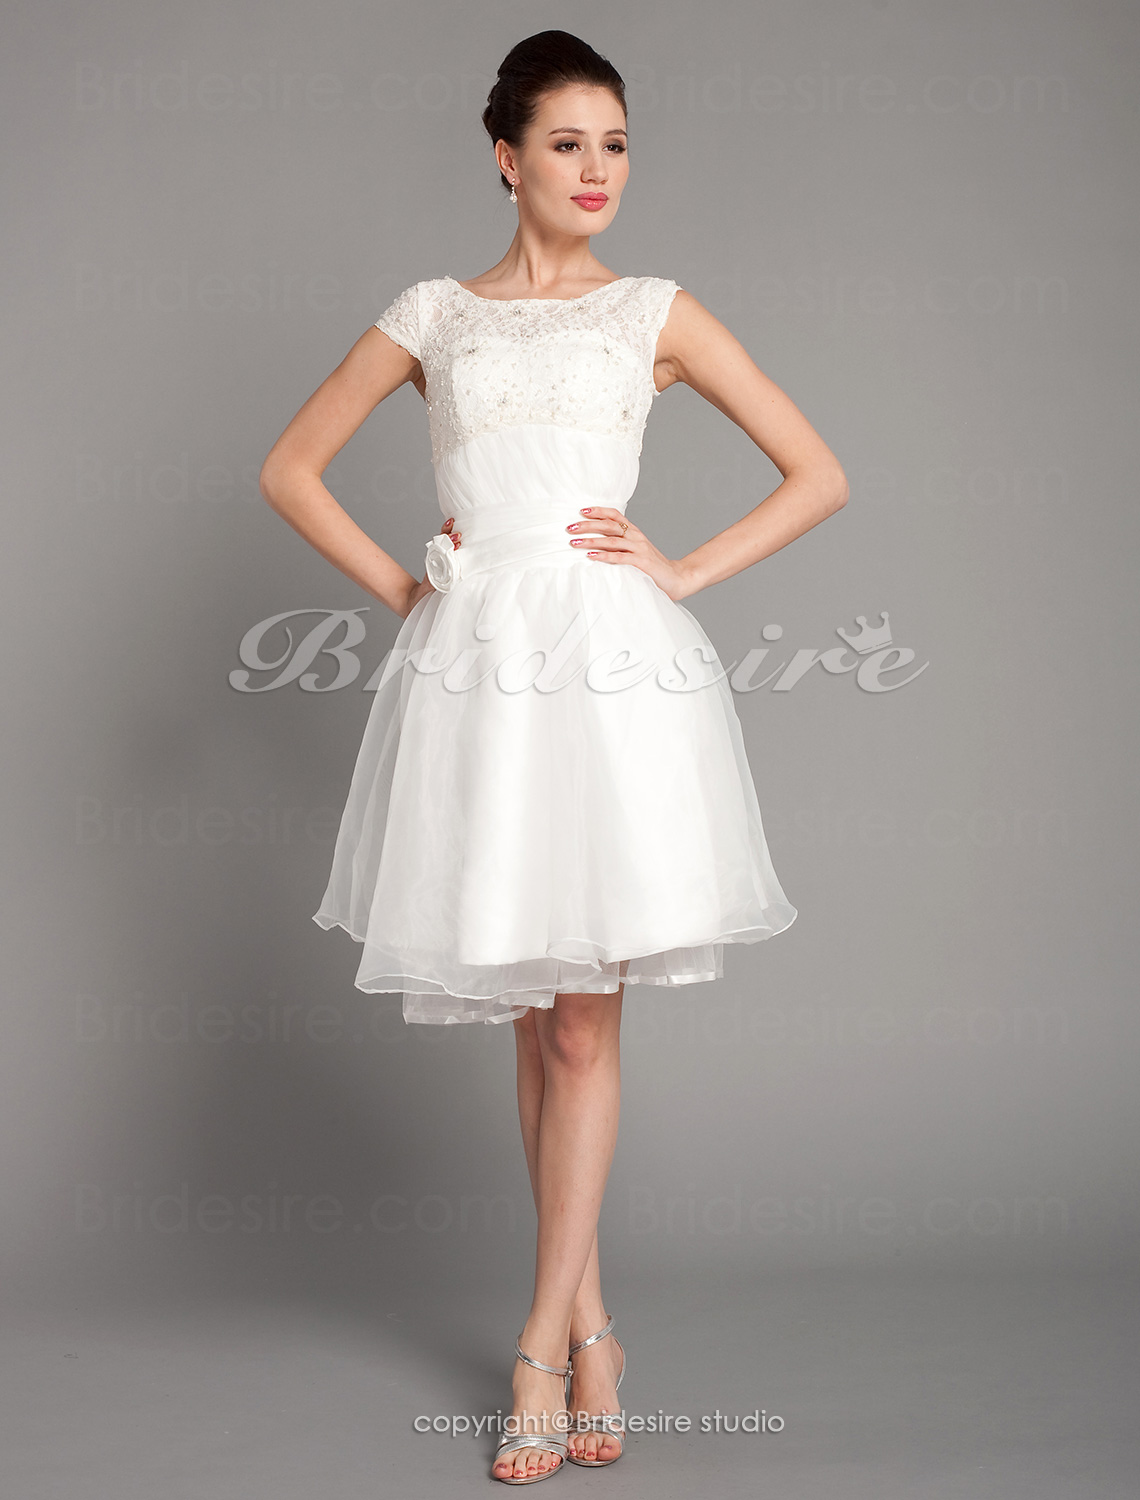 Bridesire a line bateau lace and organza wedding dress for Wedding dresses for 99